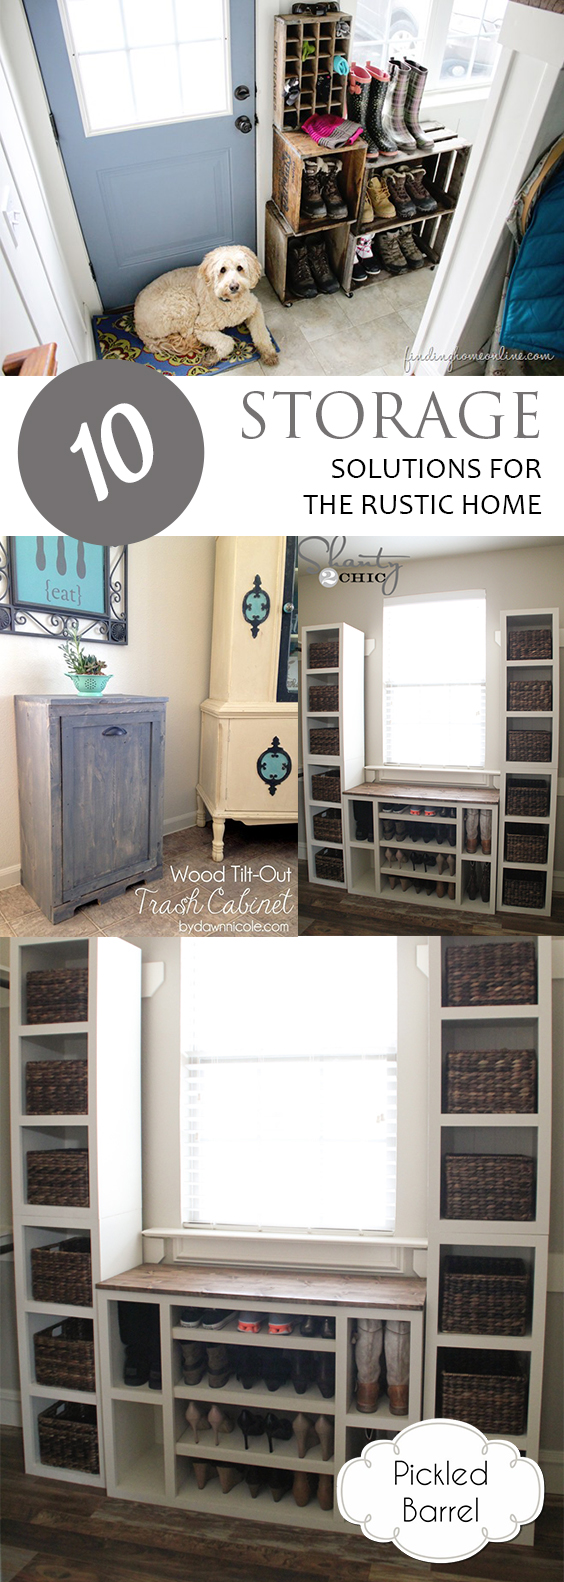 10 Storage Solutions for the Rustic Home| Storage Solutions, DIY Storage Solutions, Rustic Storage Solutions, Storage, Storage Hacks, Rustic Home, Rustic Home Hacks, Popular Pin #RusticHome #Storage